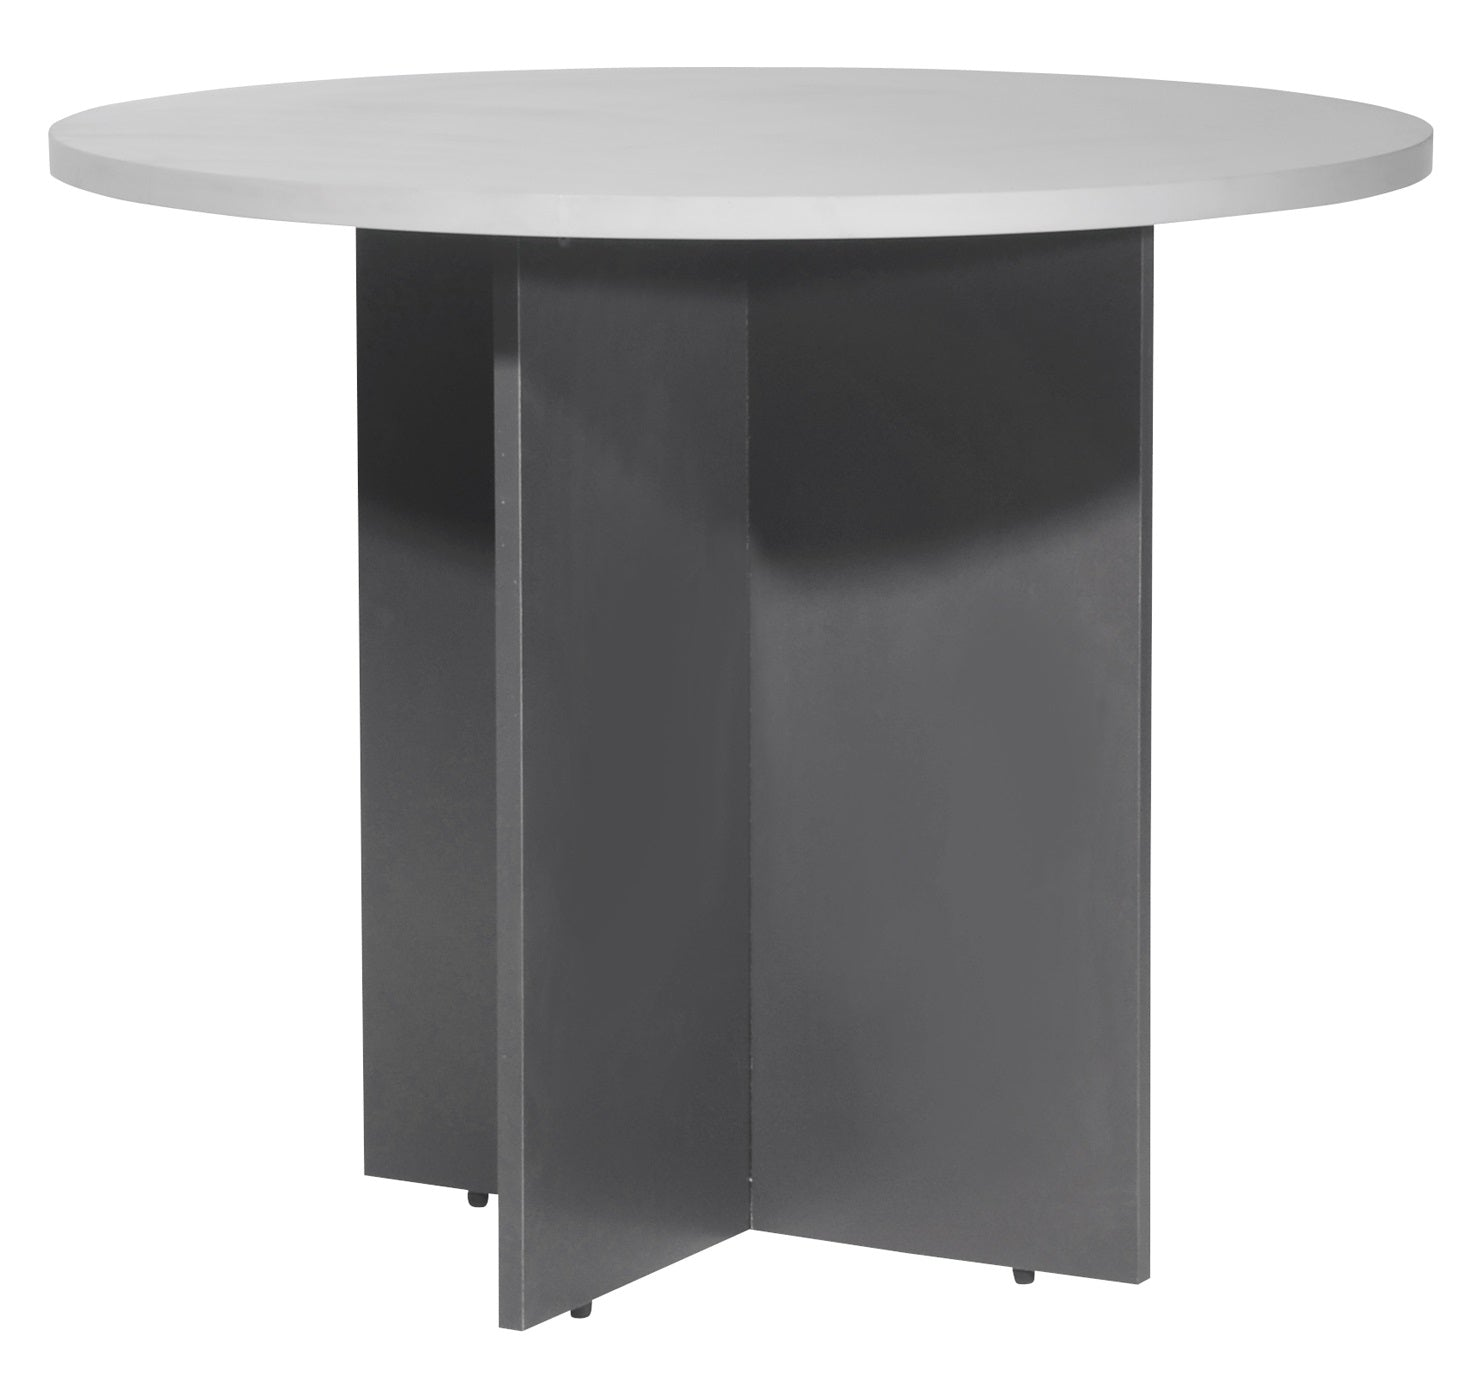 Round Conference Table Buy Office Furniture Online At Fonzel - Oblong conference table